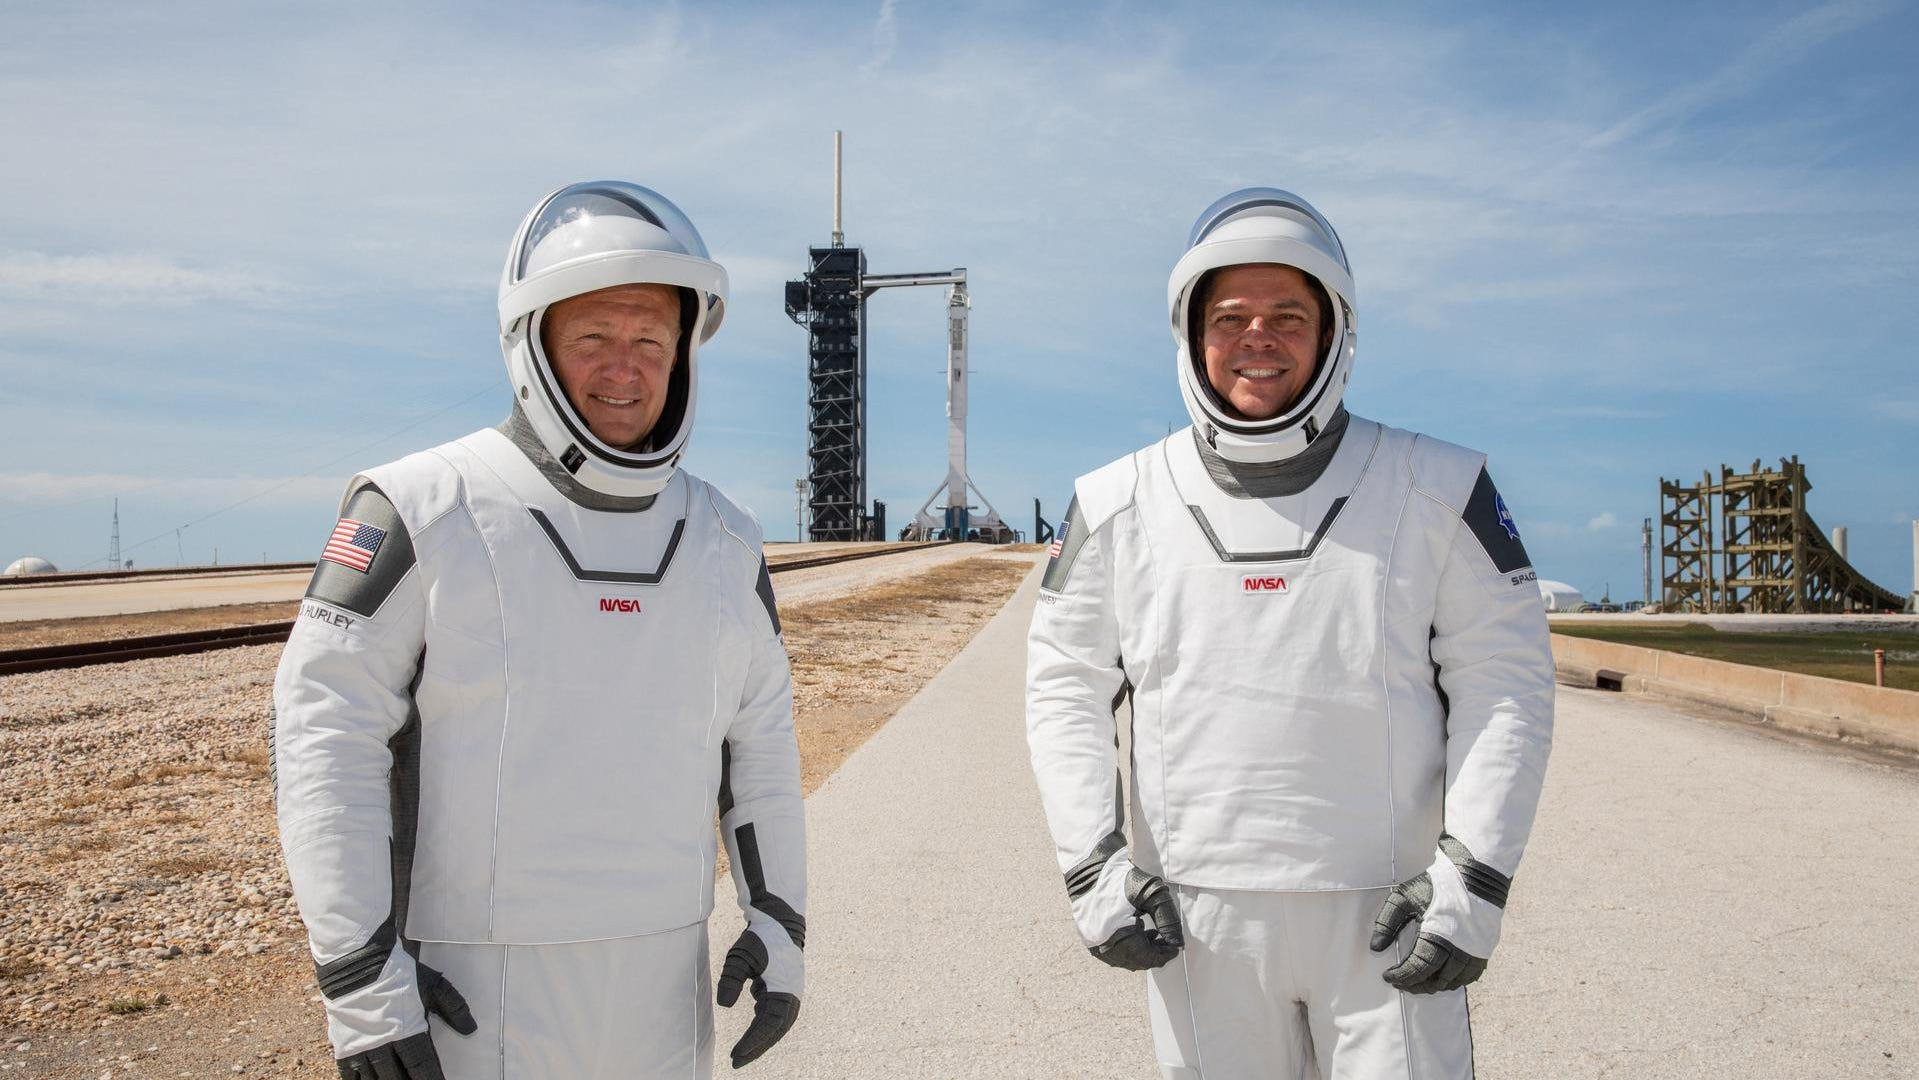 NASA astronauts Bob Behnken and Doug Hurley perform a rehearsal on Saturday, May 23, 2020, for the launch of SpaceX's Demo-2 mission, its first launch of astronauts to the International Space Station.